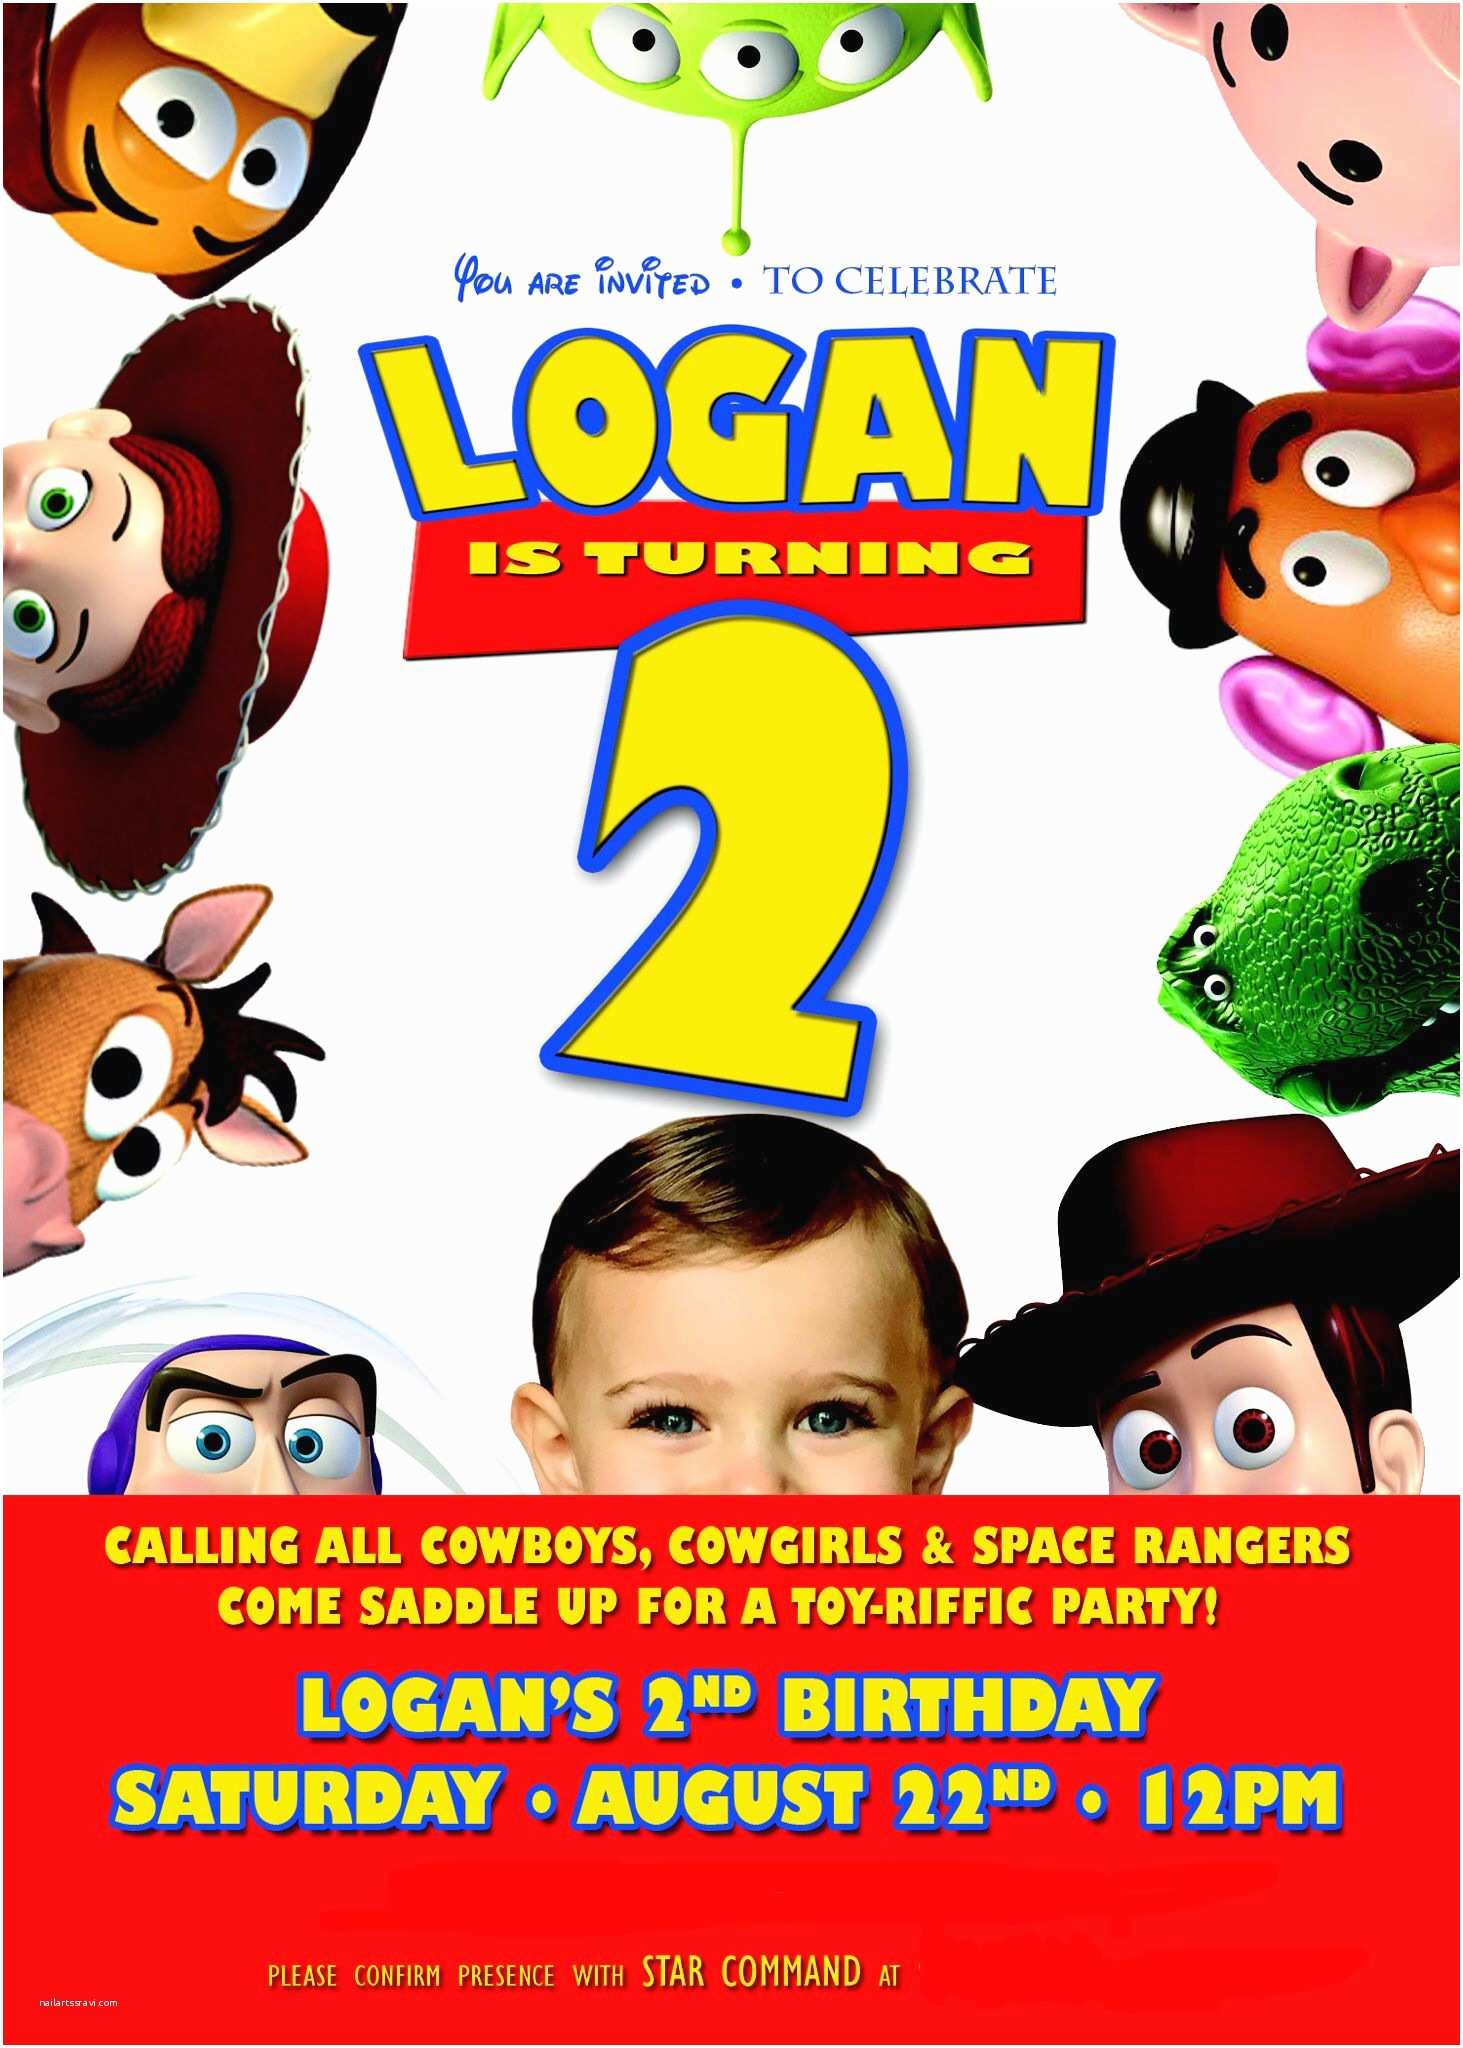 Toy Story Party Invitations the Invitation From Logan S toy Story Party